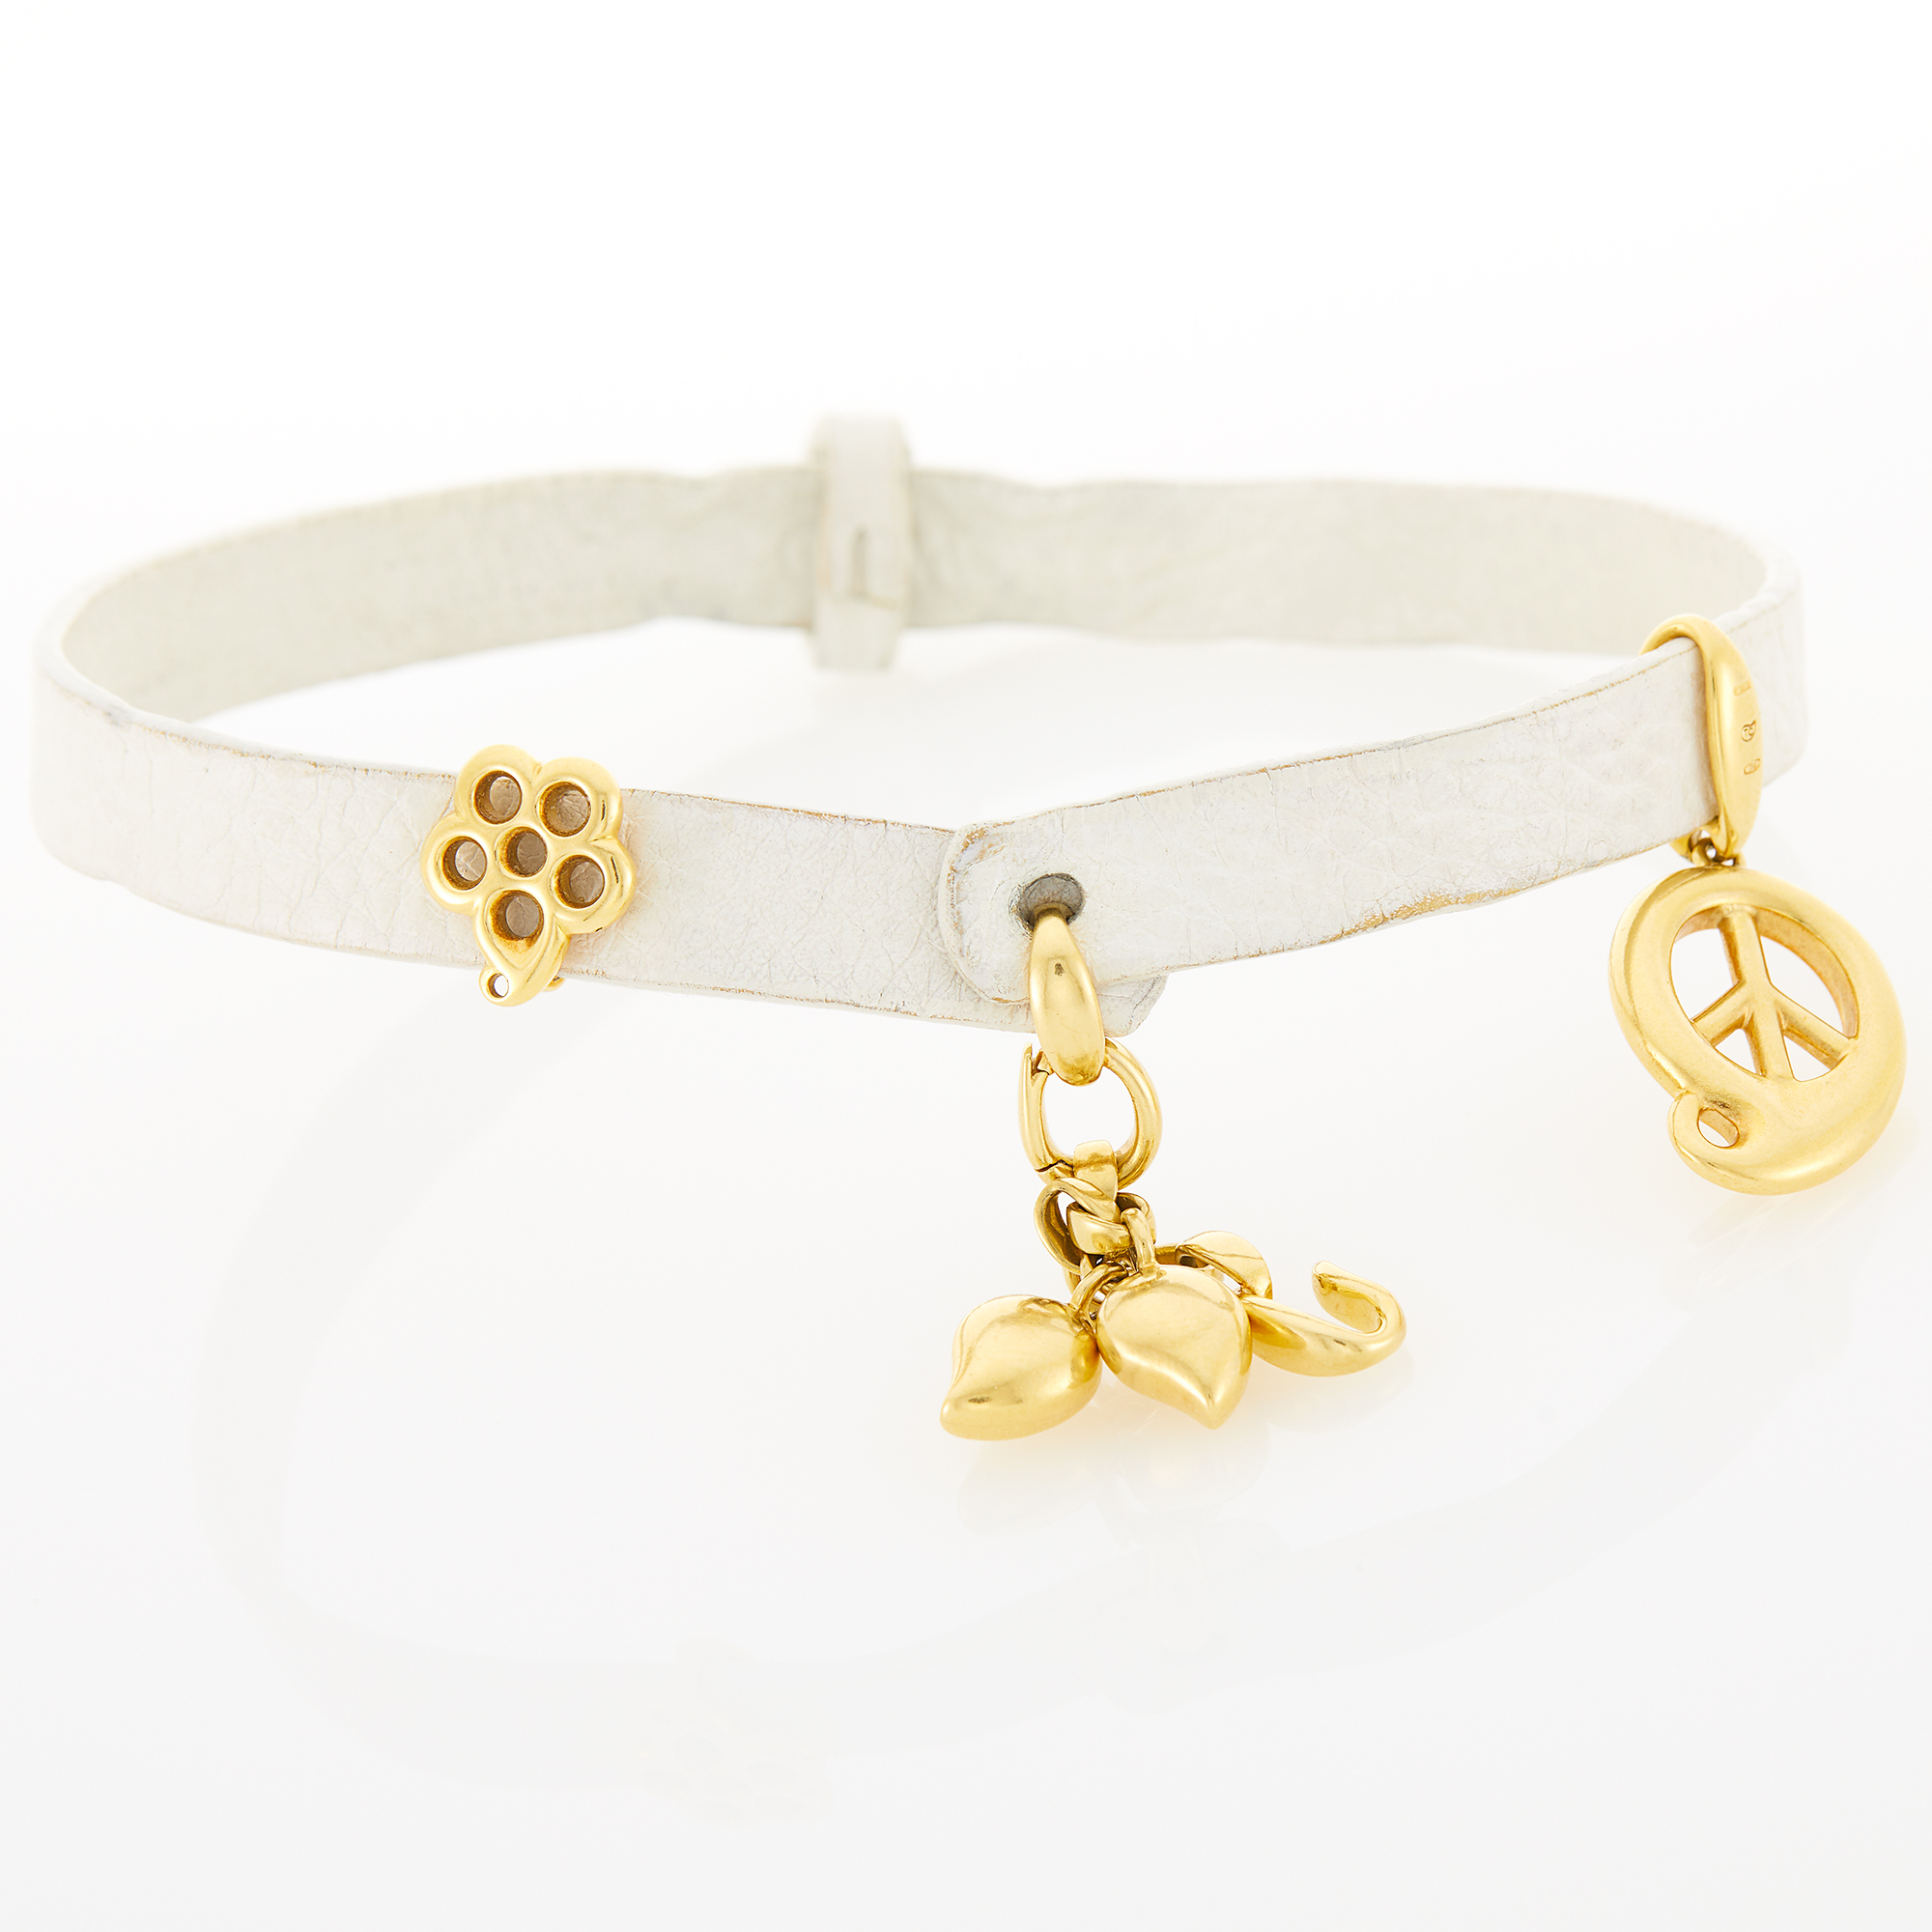 Lot image - Tamara Comolli Gold Charm and White Leather Loopy Wrap Bracelet/Choker Combination